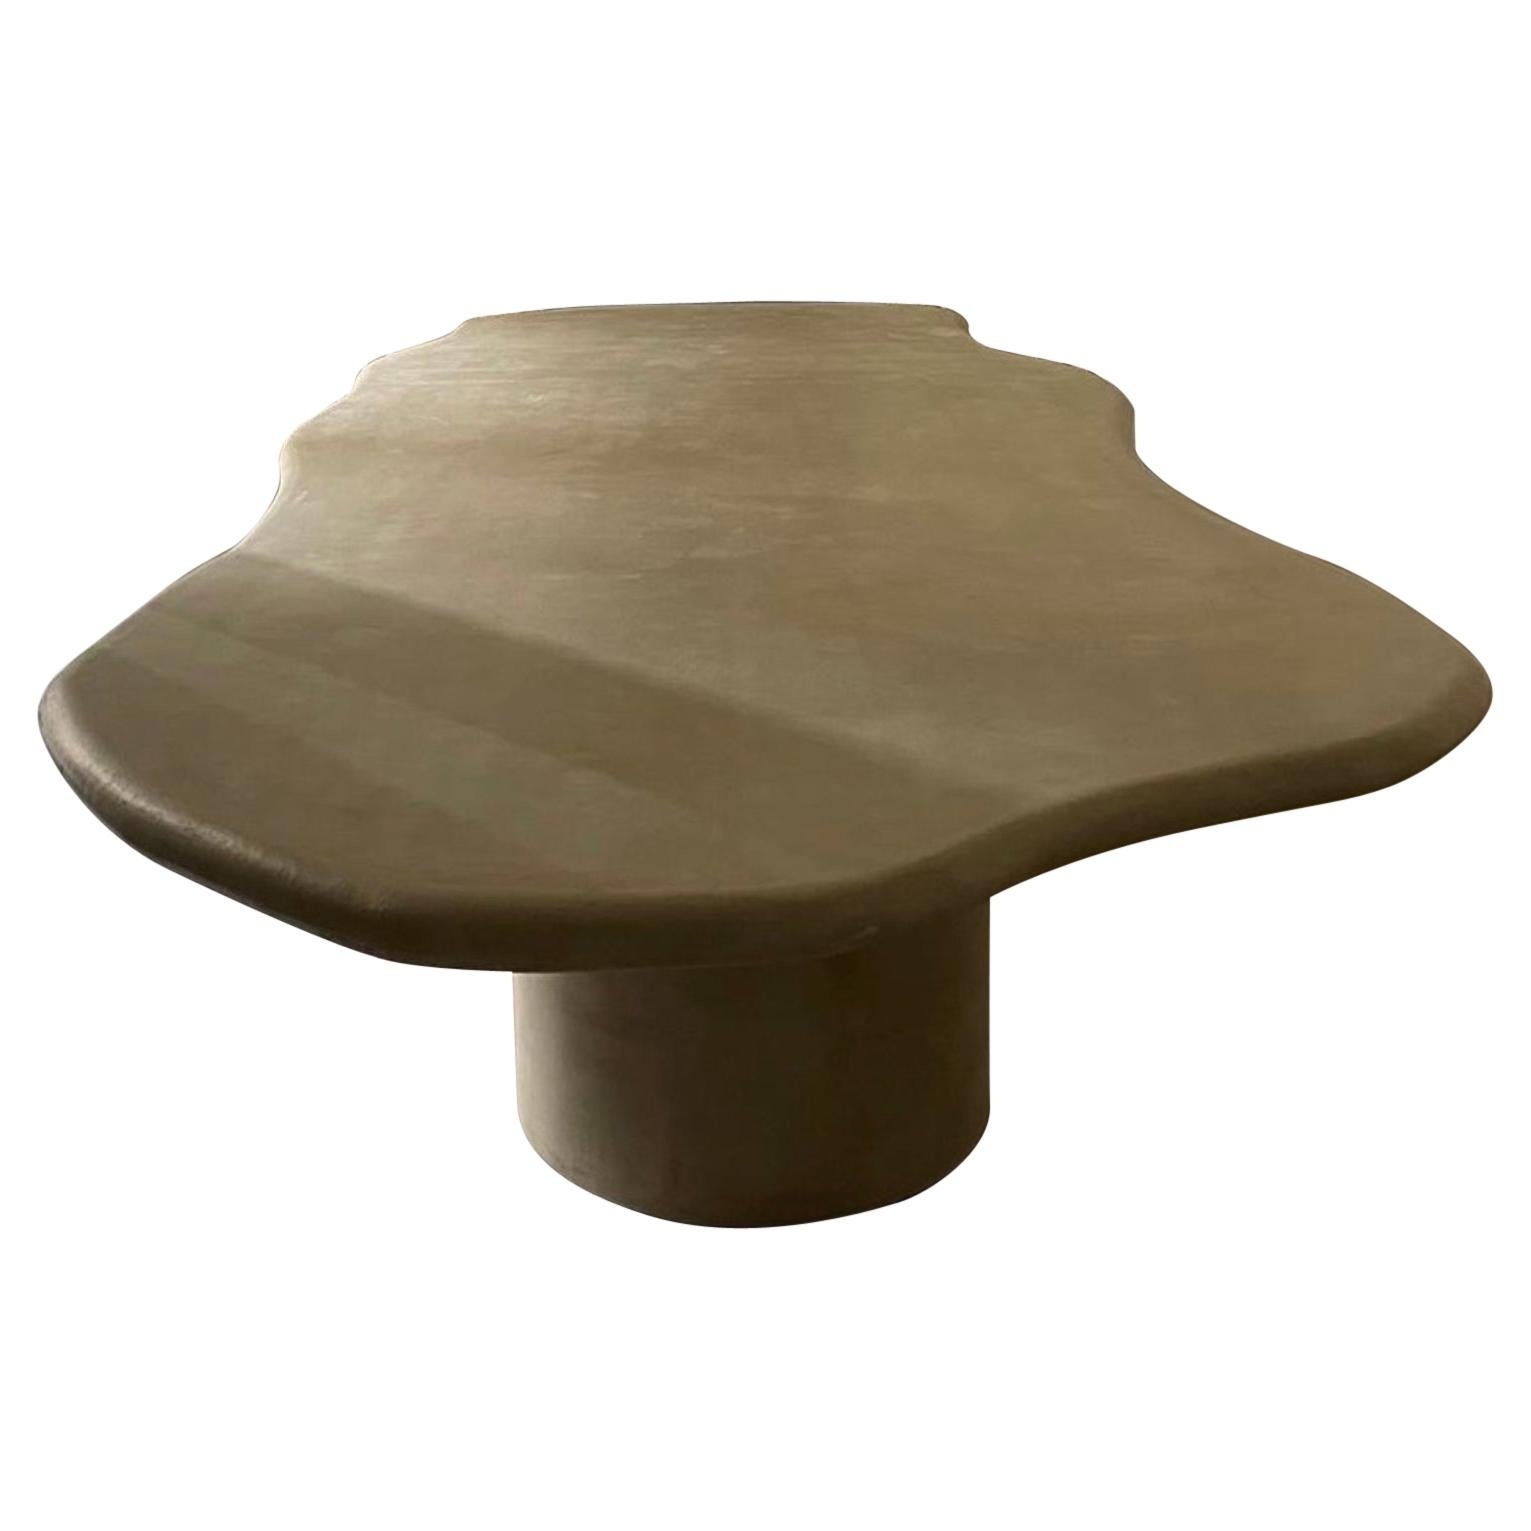 Sculptural 2 Legs Dining Table 200 by Urban Creative